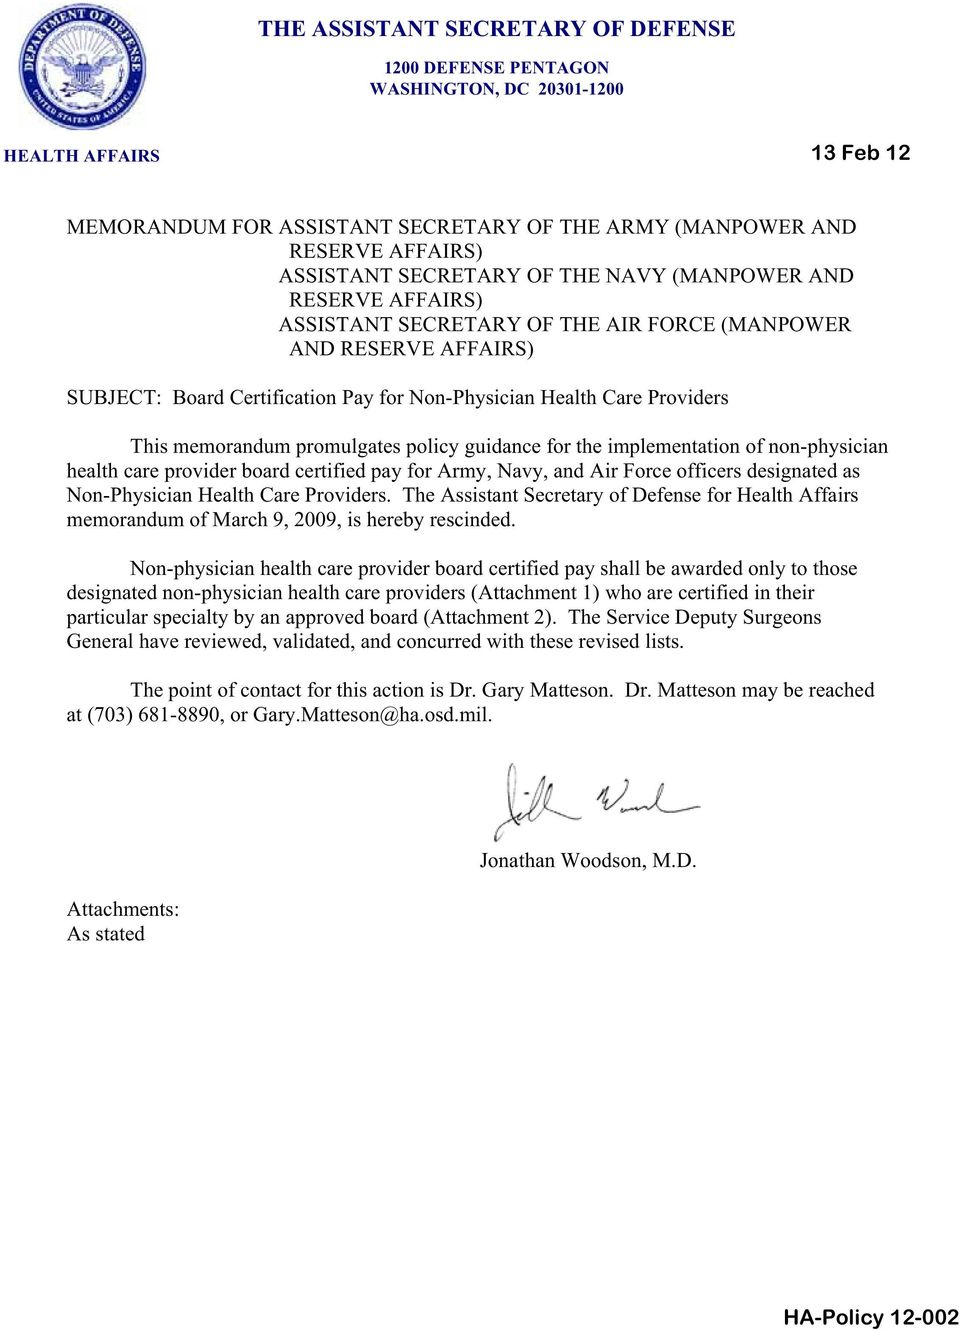 memorandum promulgates policy guidance for the implementation of non-physician health care provider board certified pay for Army, Navy, and Air Force officers designated as Non-Physician Health Care